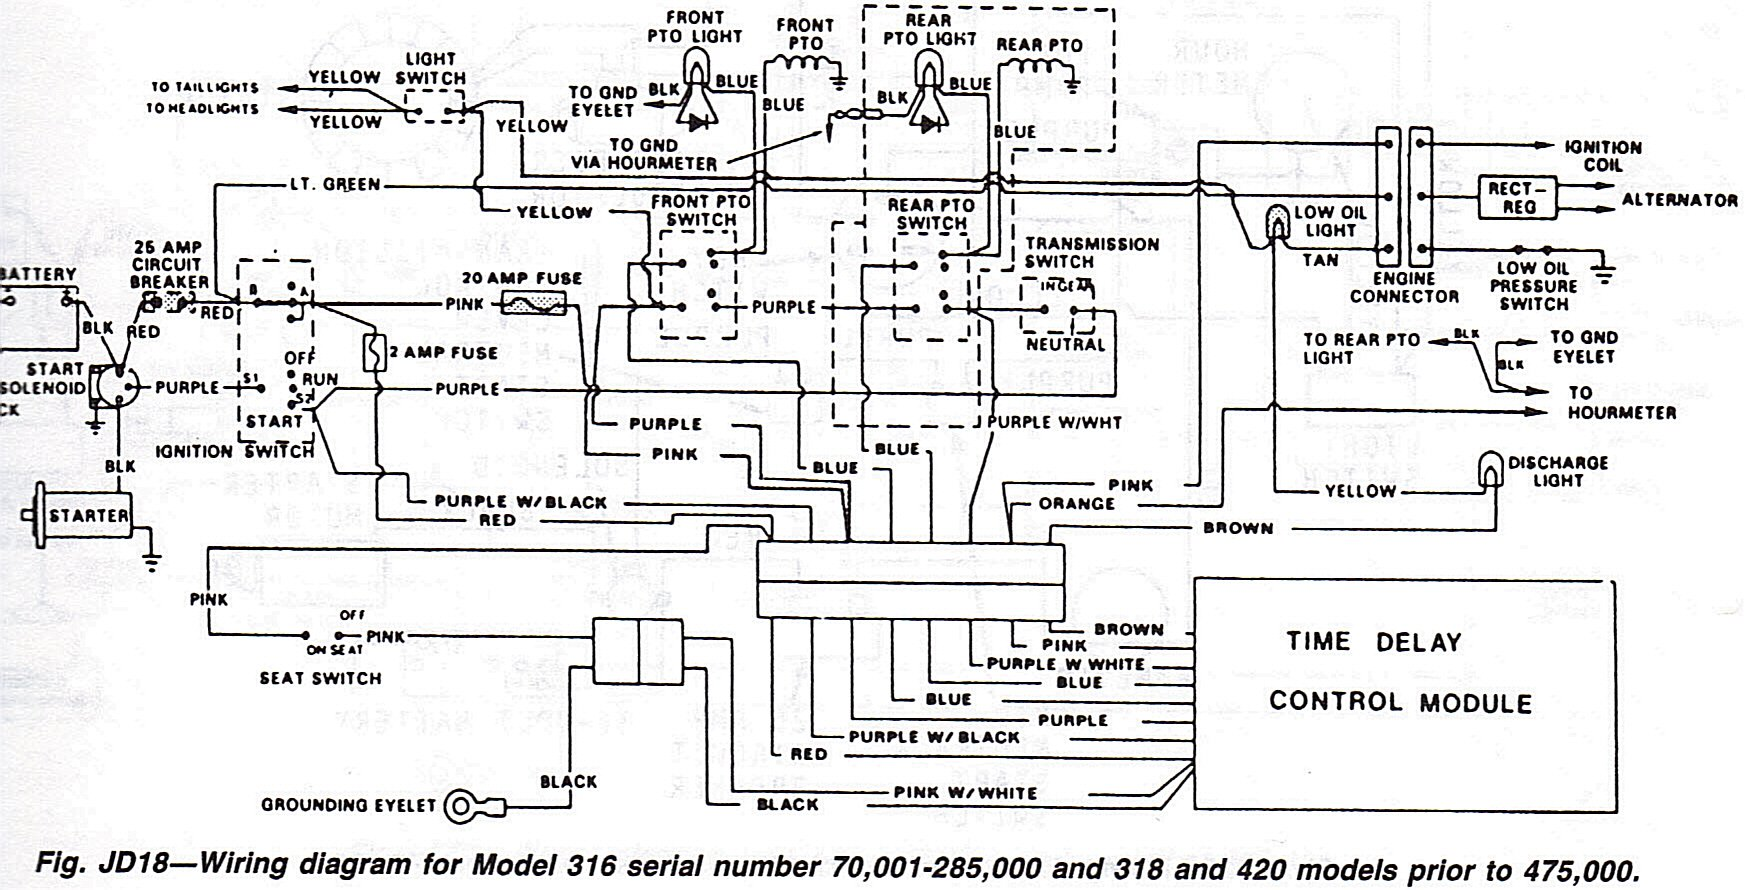 John Deere 316 Wiring Diagram Diagrams 04 60 I Have A Mower And Can Start It But When Put 318 Pto